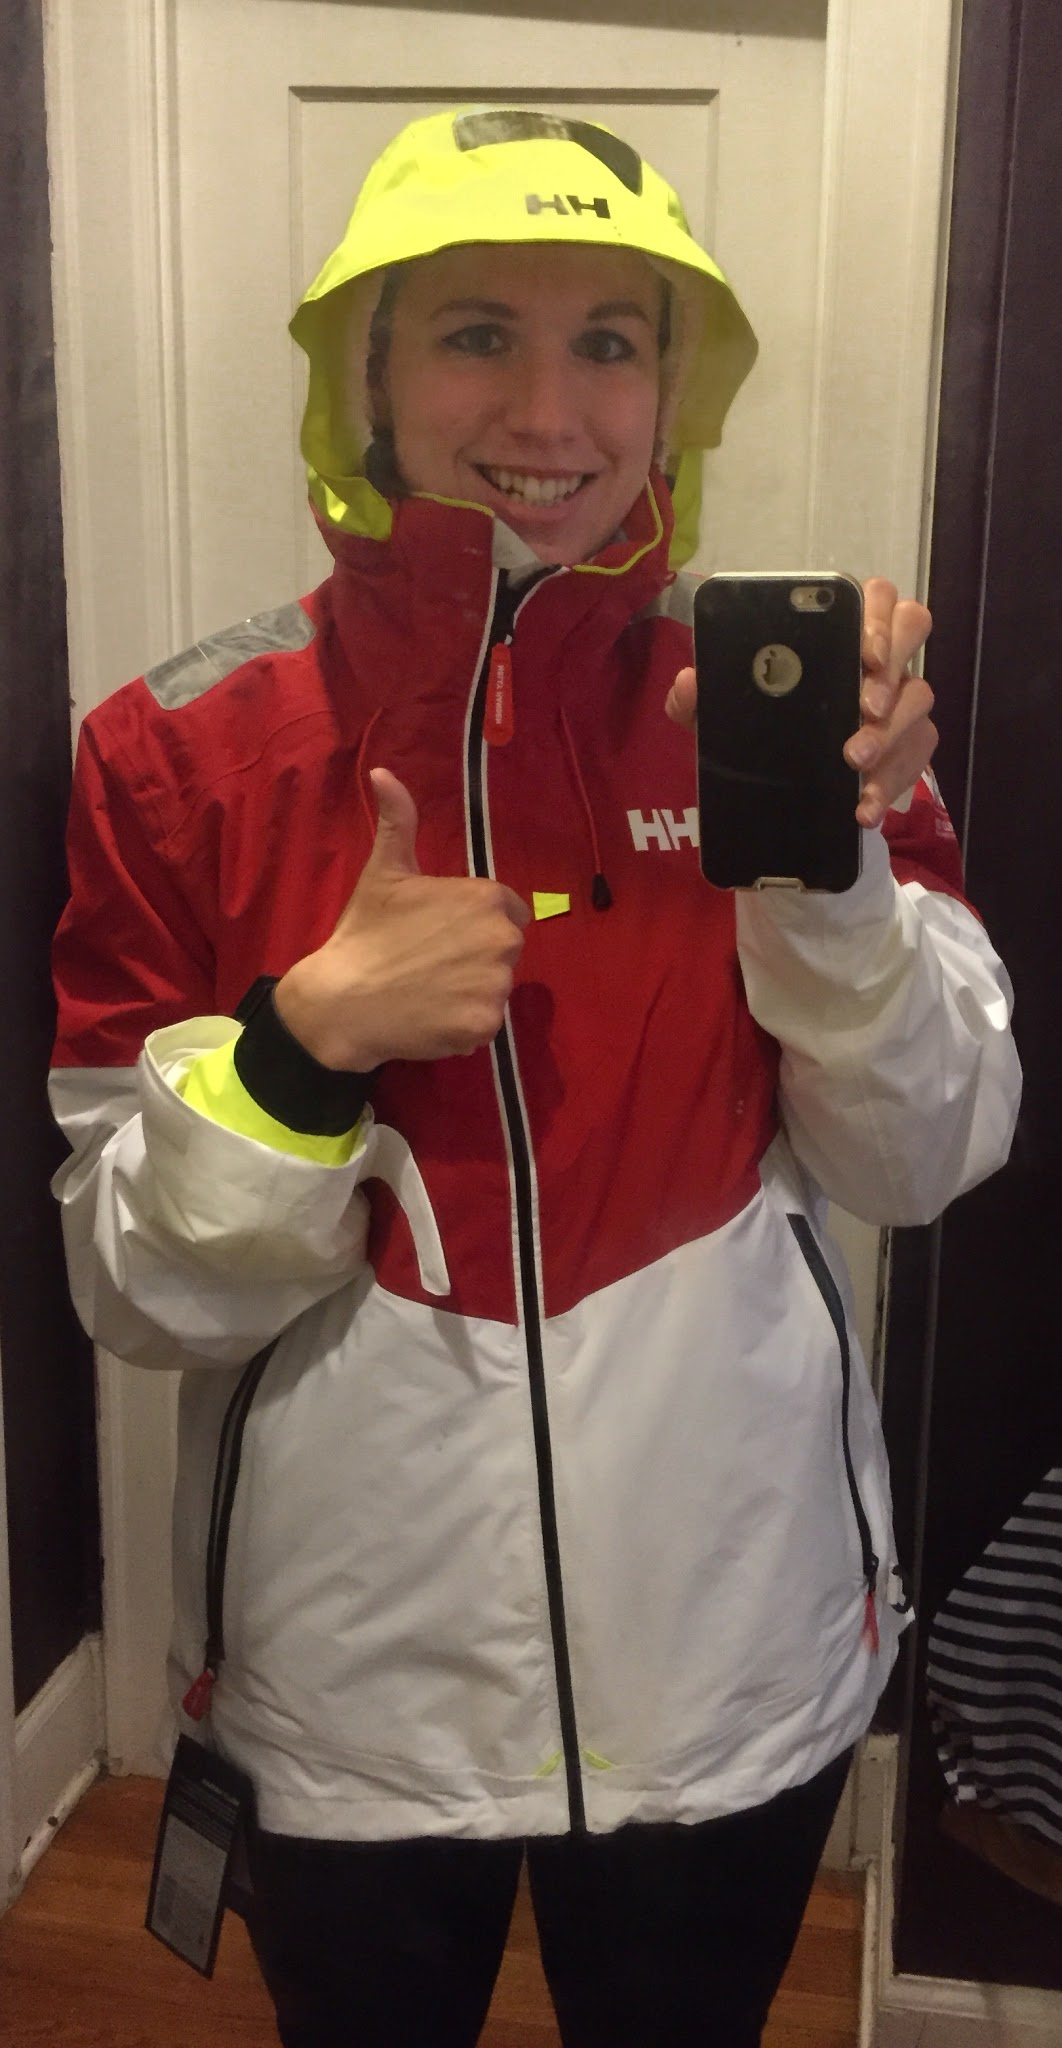 Helly Hansen rain jacket with great cuffs to keep the water out